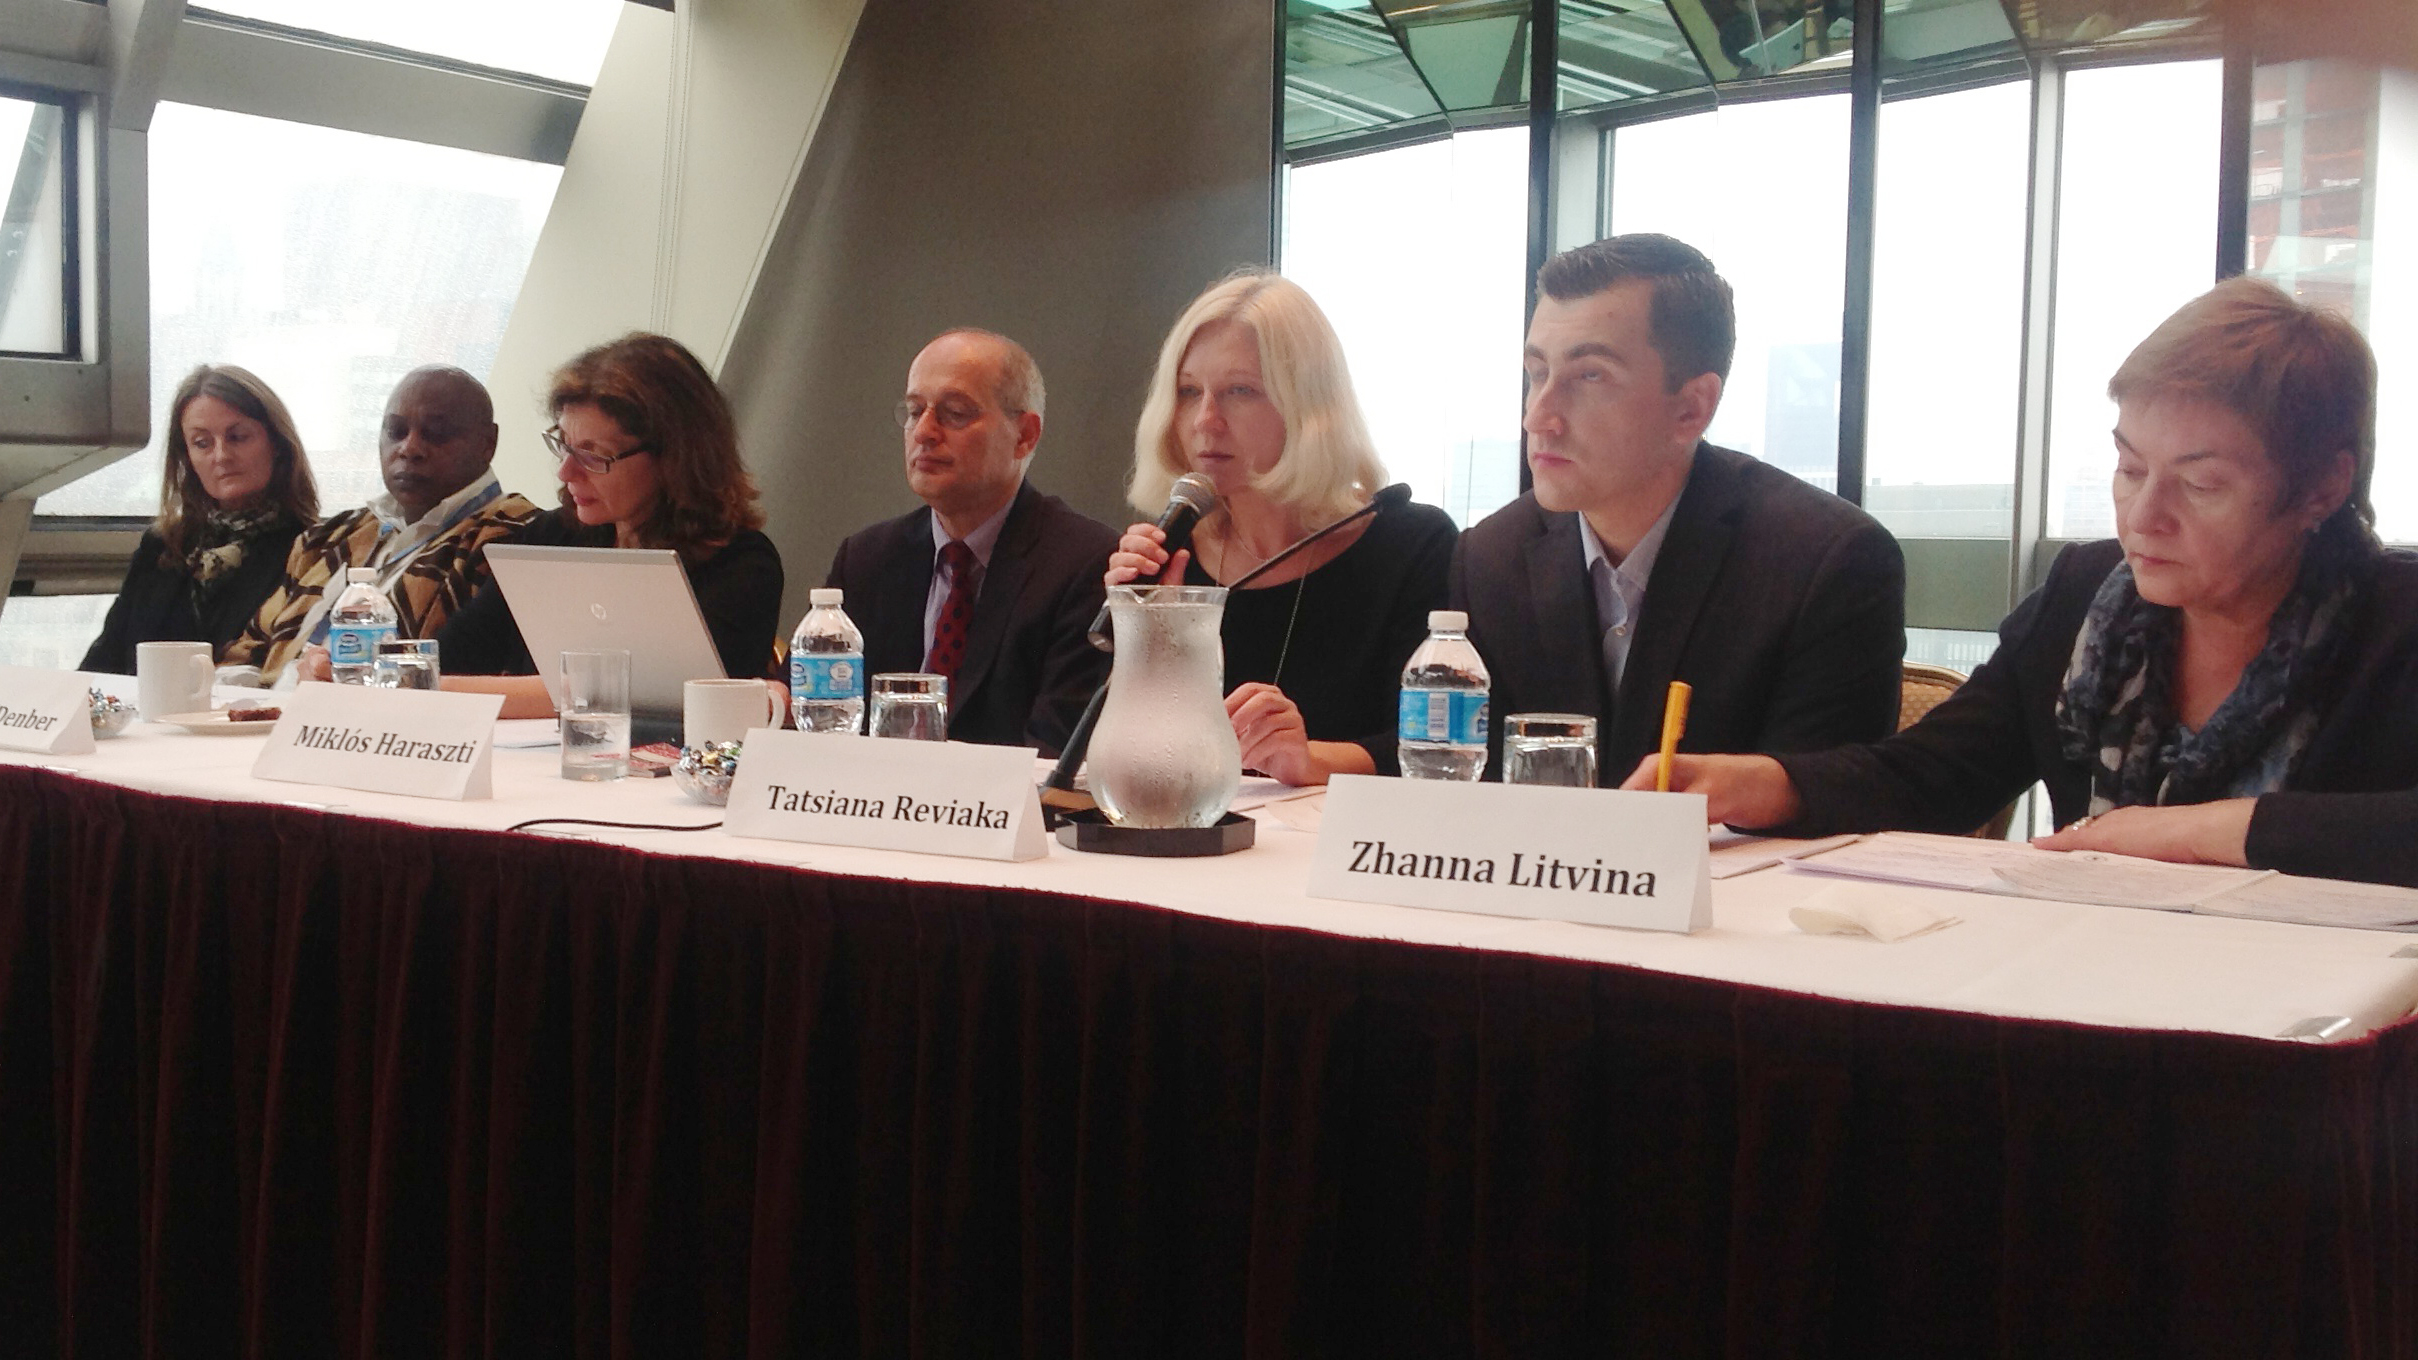 Tatsiana Reviaka raises the human rights situation in Belarus at the United Nations in New York in 2013. The panel includes Maria Dahle and Zhanna Litvina on a panel alongside Maina Kiai (the former Special Rapporteur on the freedoms of assembly and association), and Miklós Haraszti (the former Special Rapporteur on Belarus), and others. Photo: humanrightshouse.org